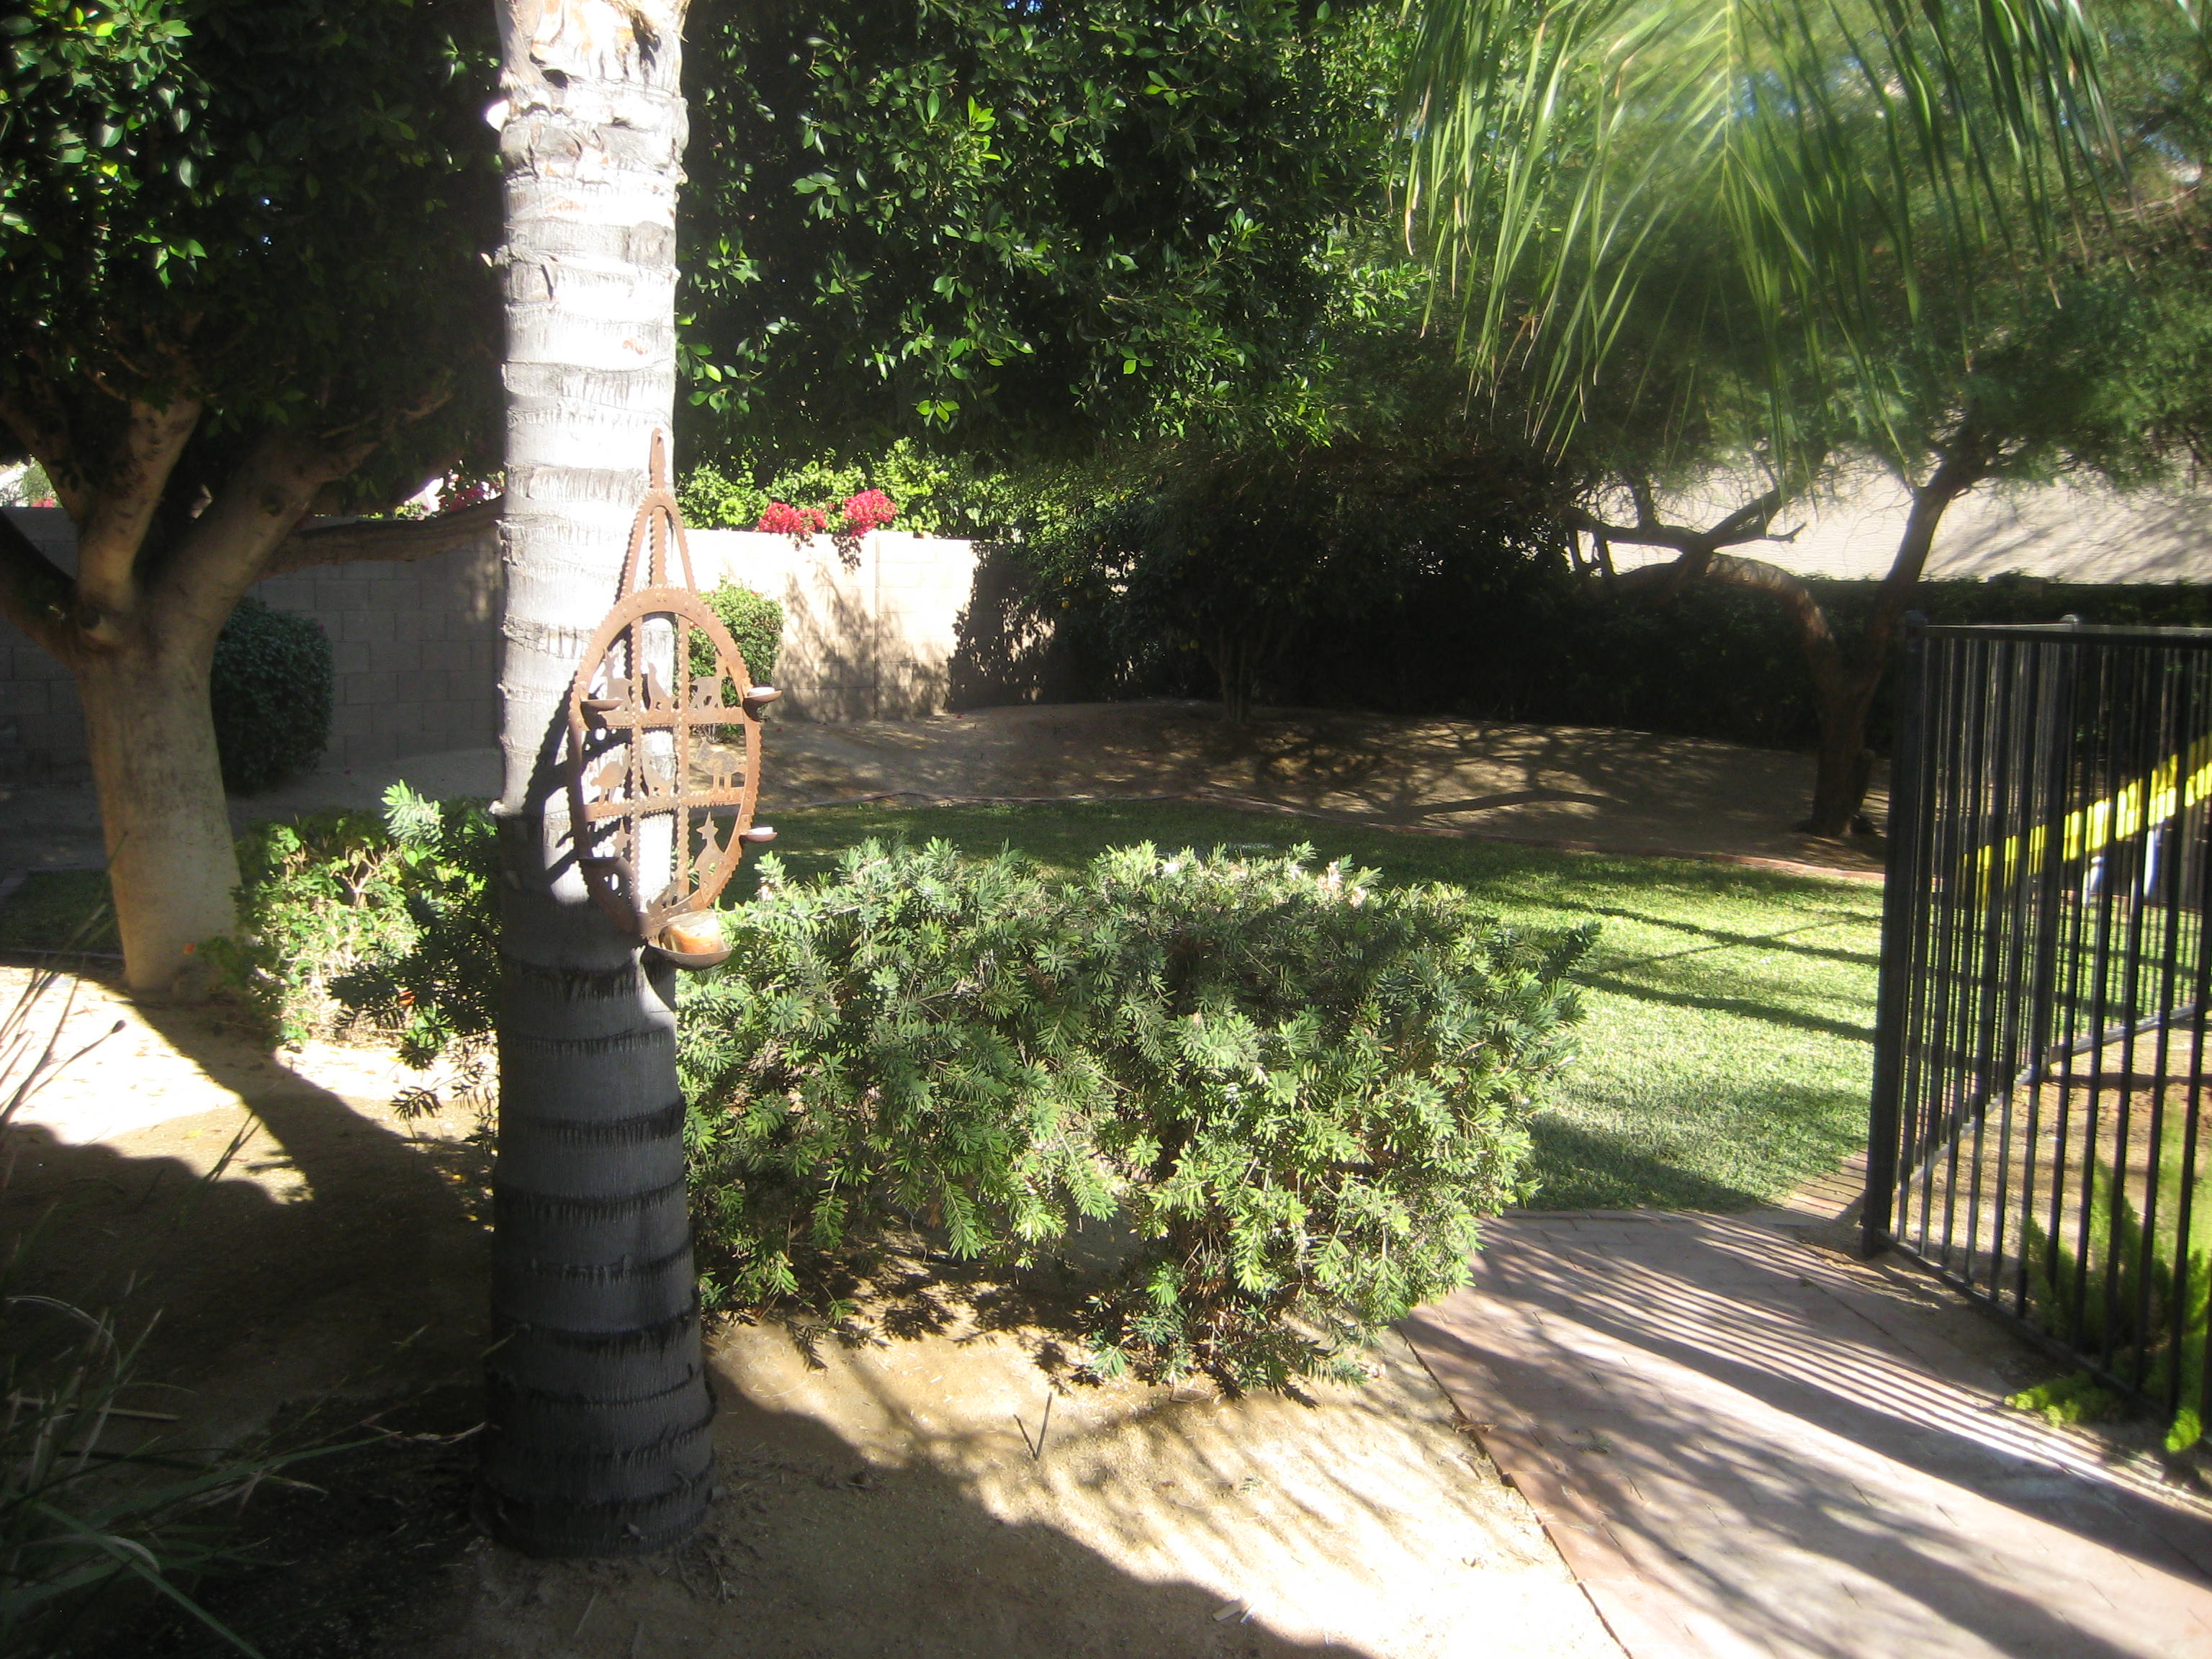 North Scottsdale Place